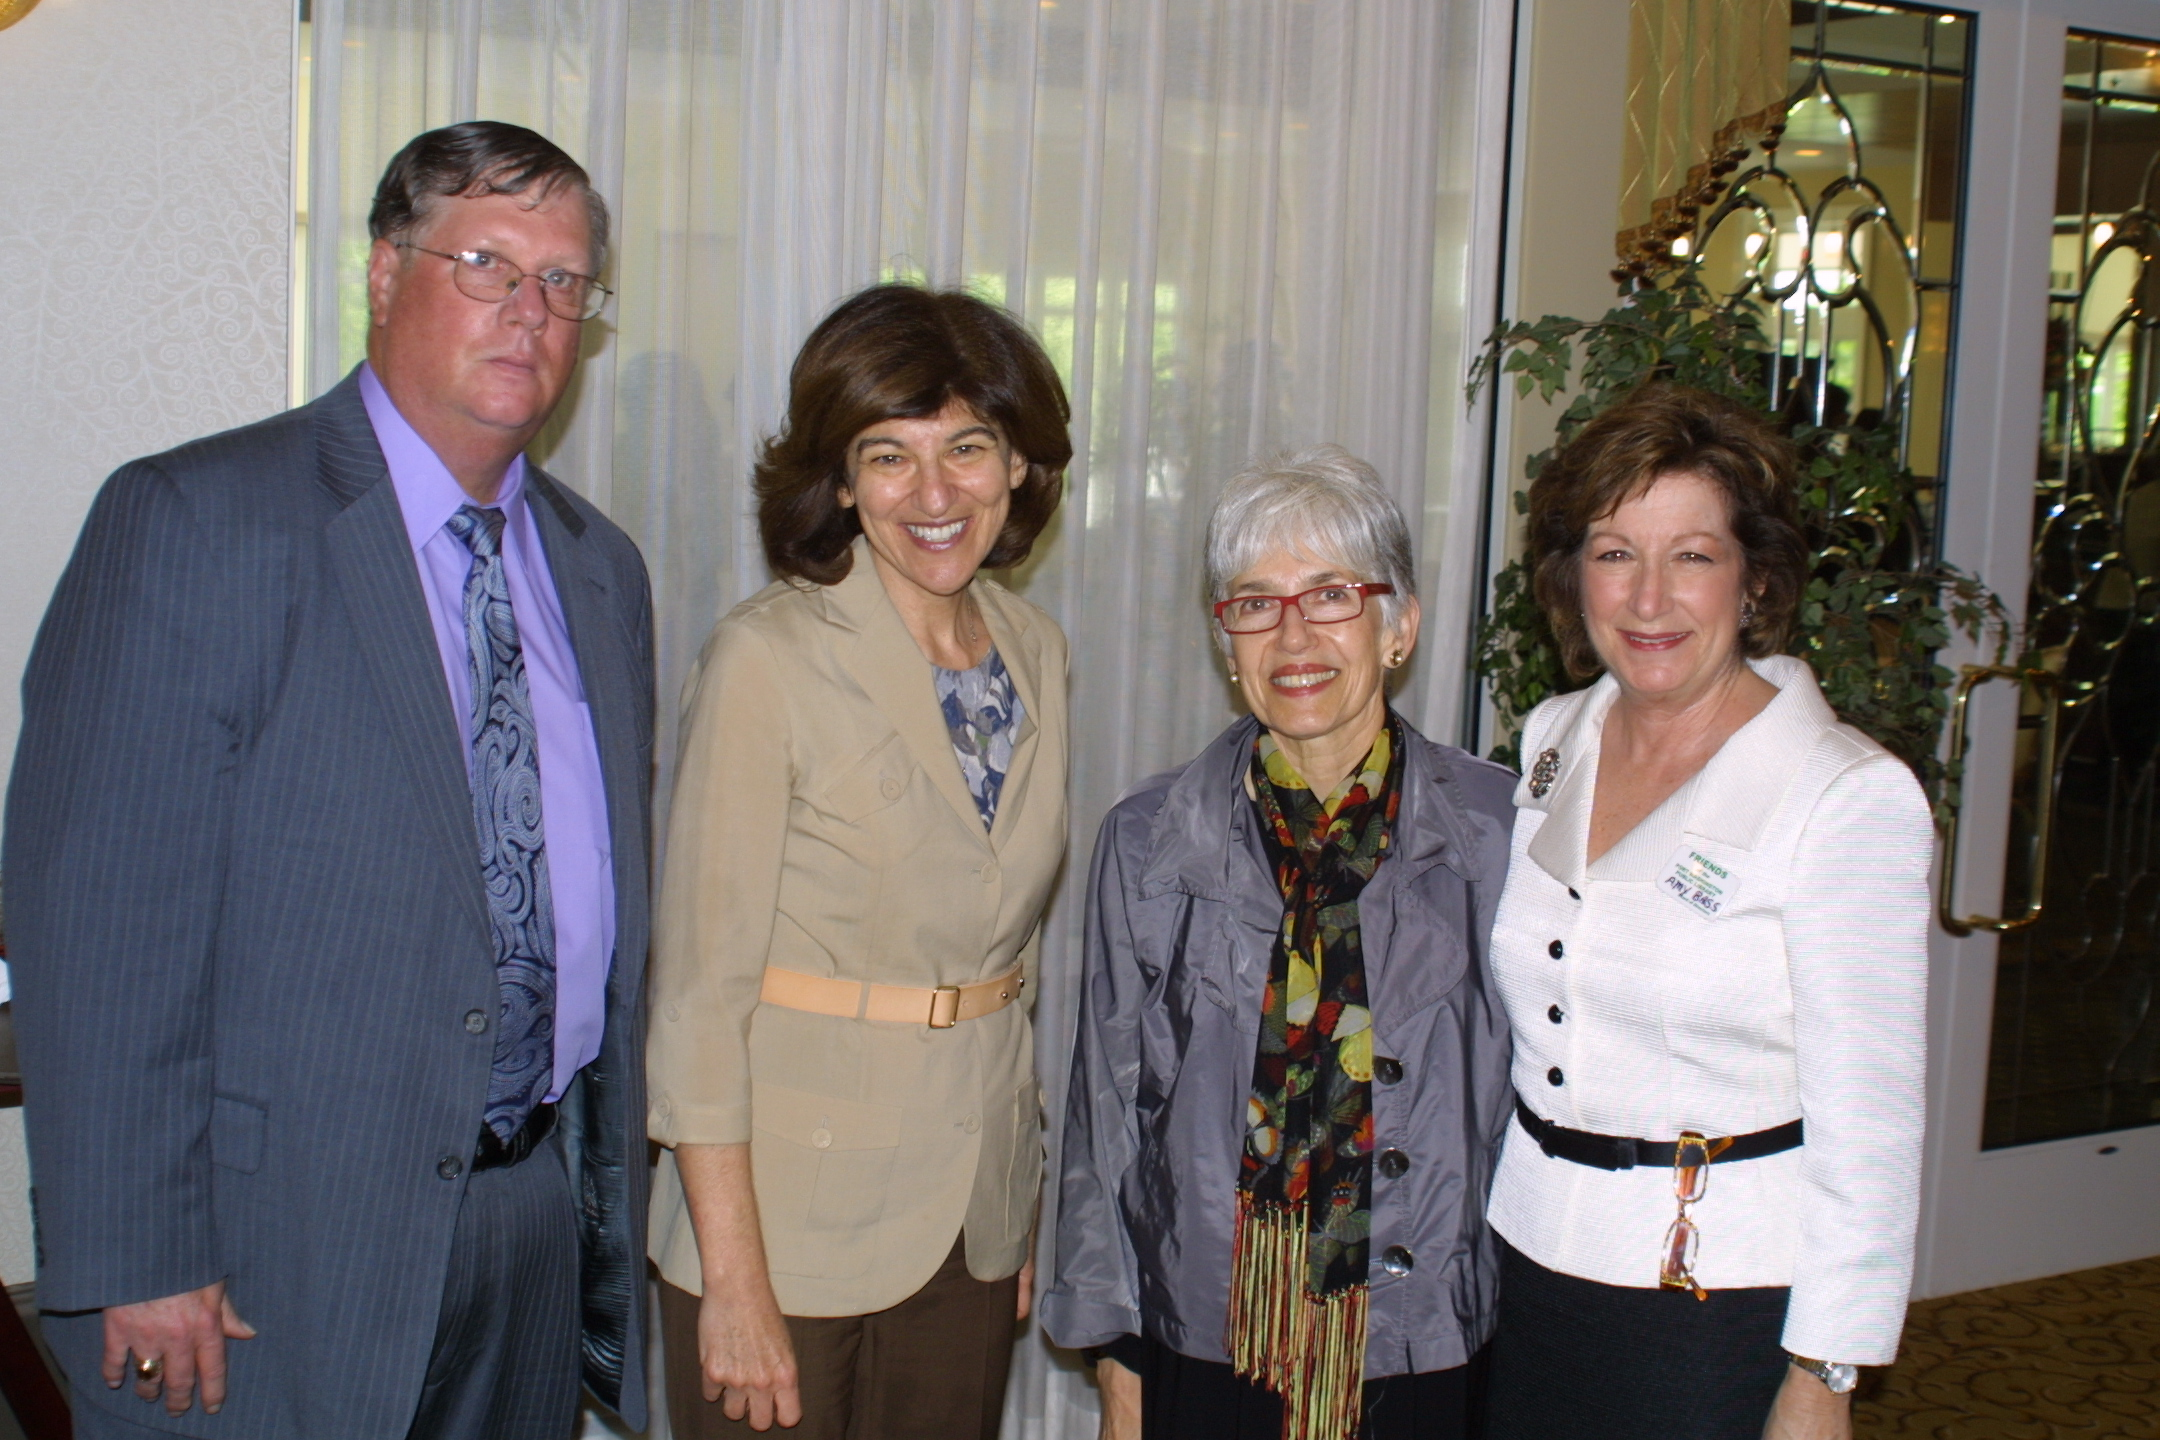 Library Board President Lee Aitken, authors Julie Salamon and Dava Sobel, and FOL president Amy Bass